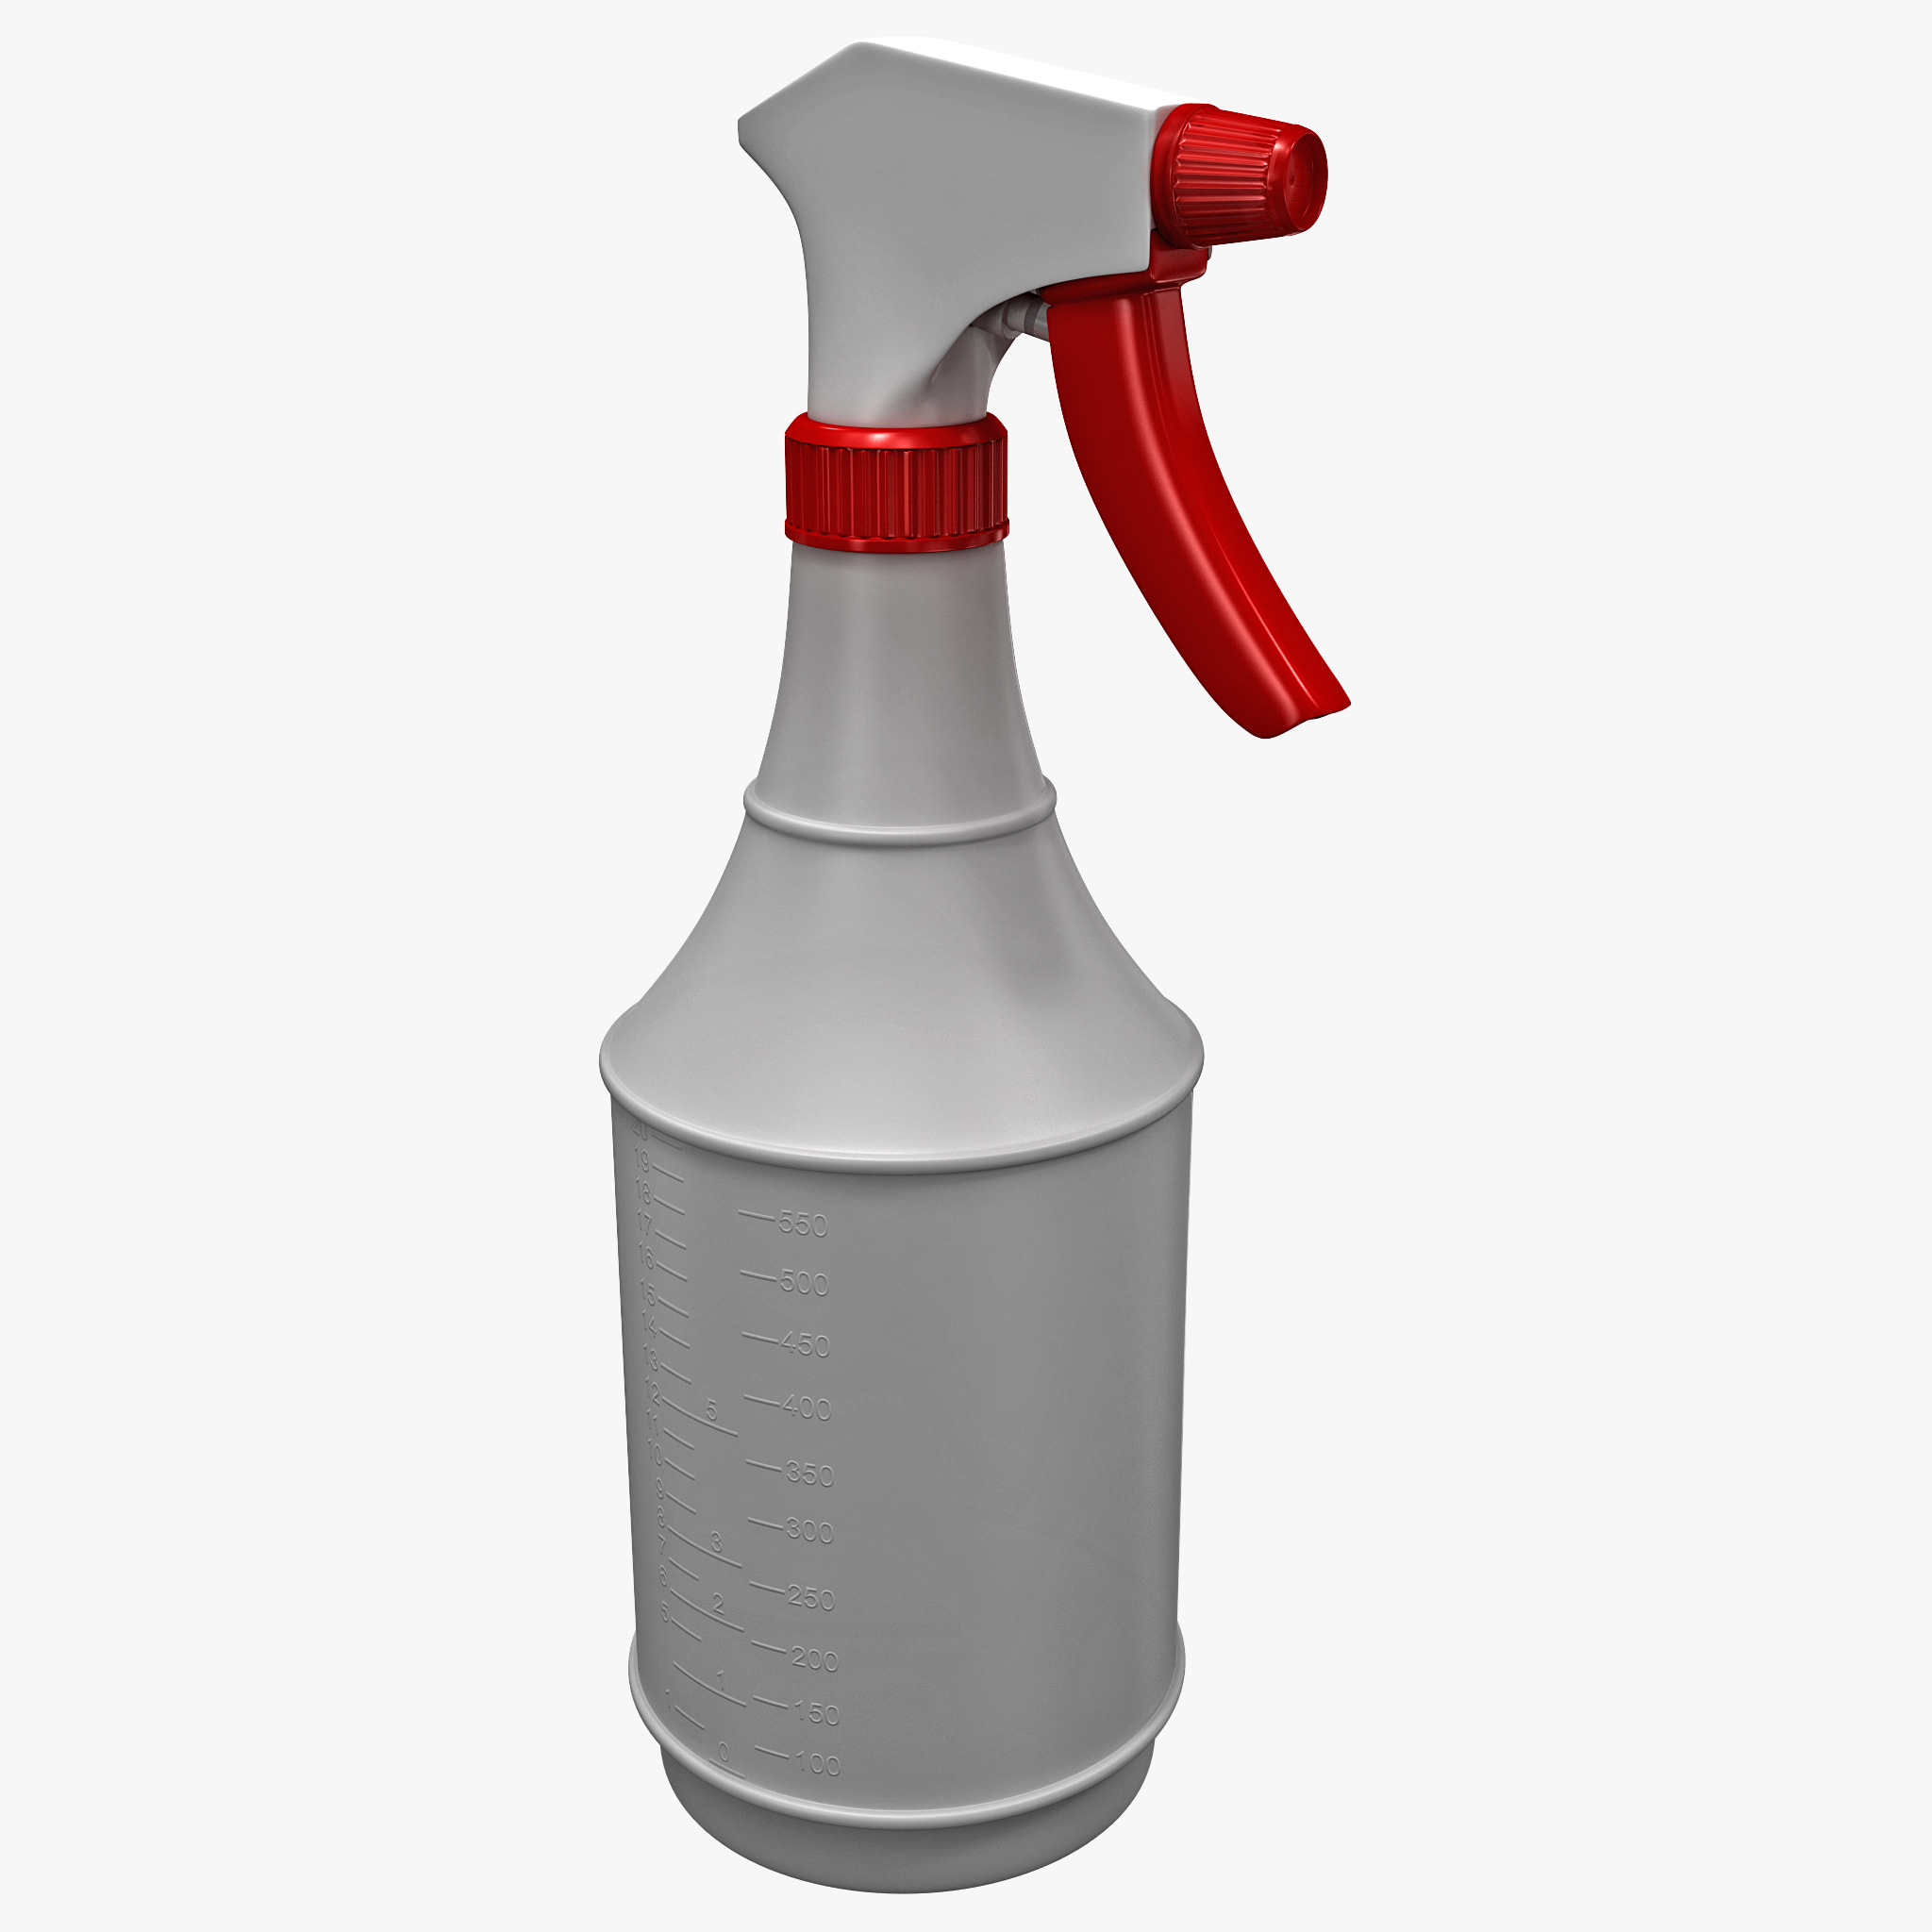 3ds max spray bottle